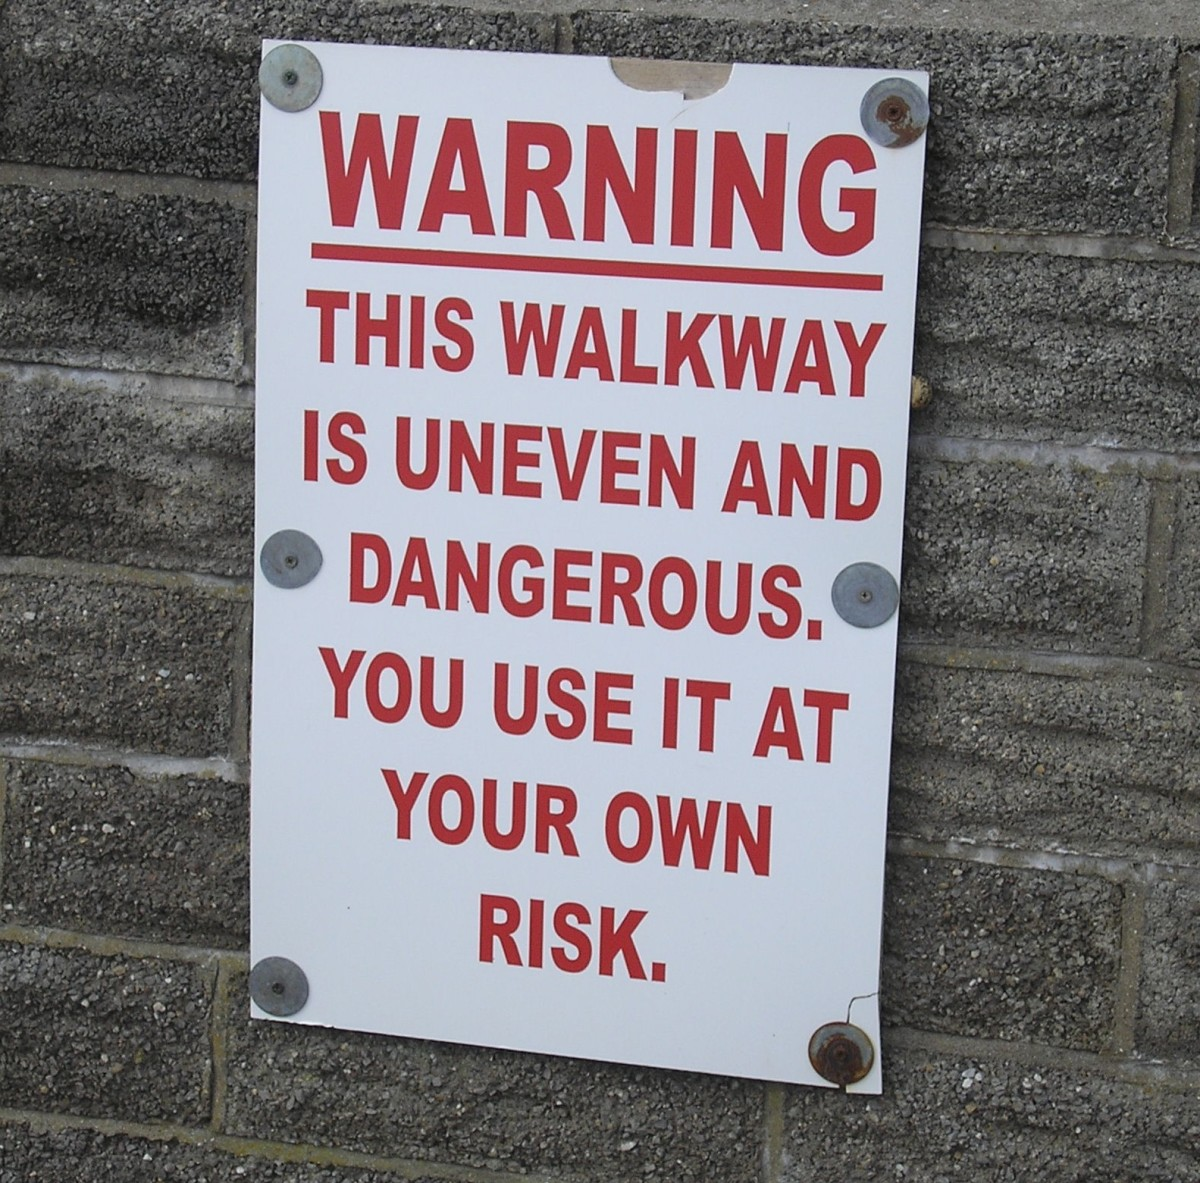 Walkway warning.